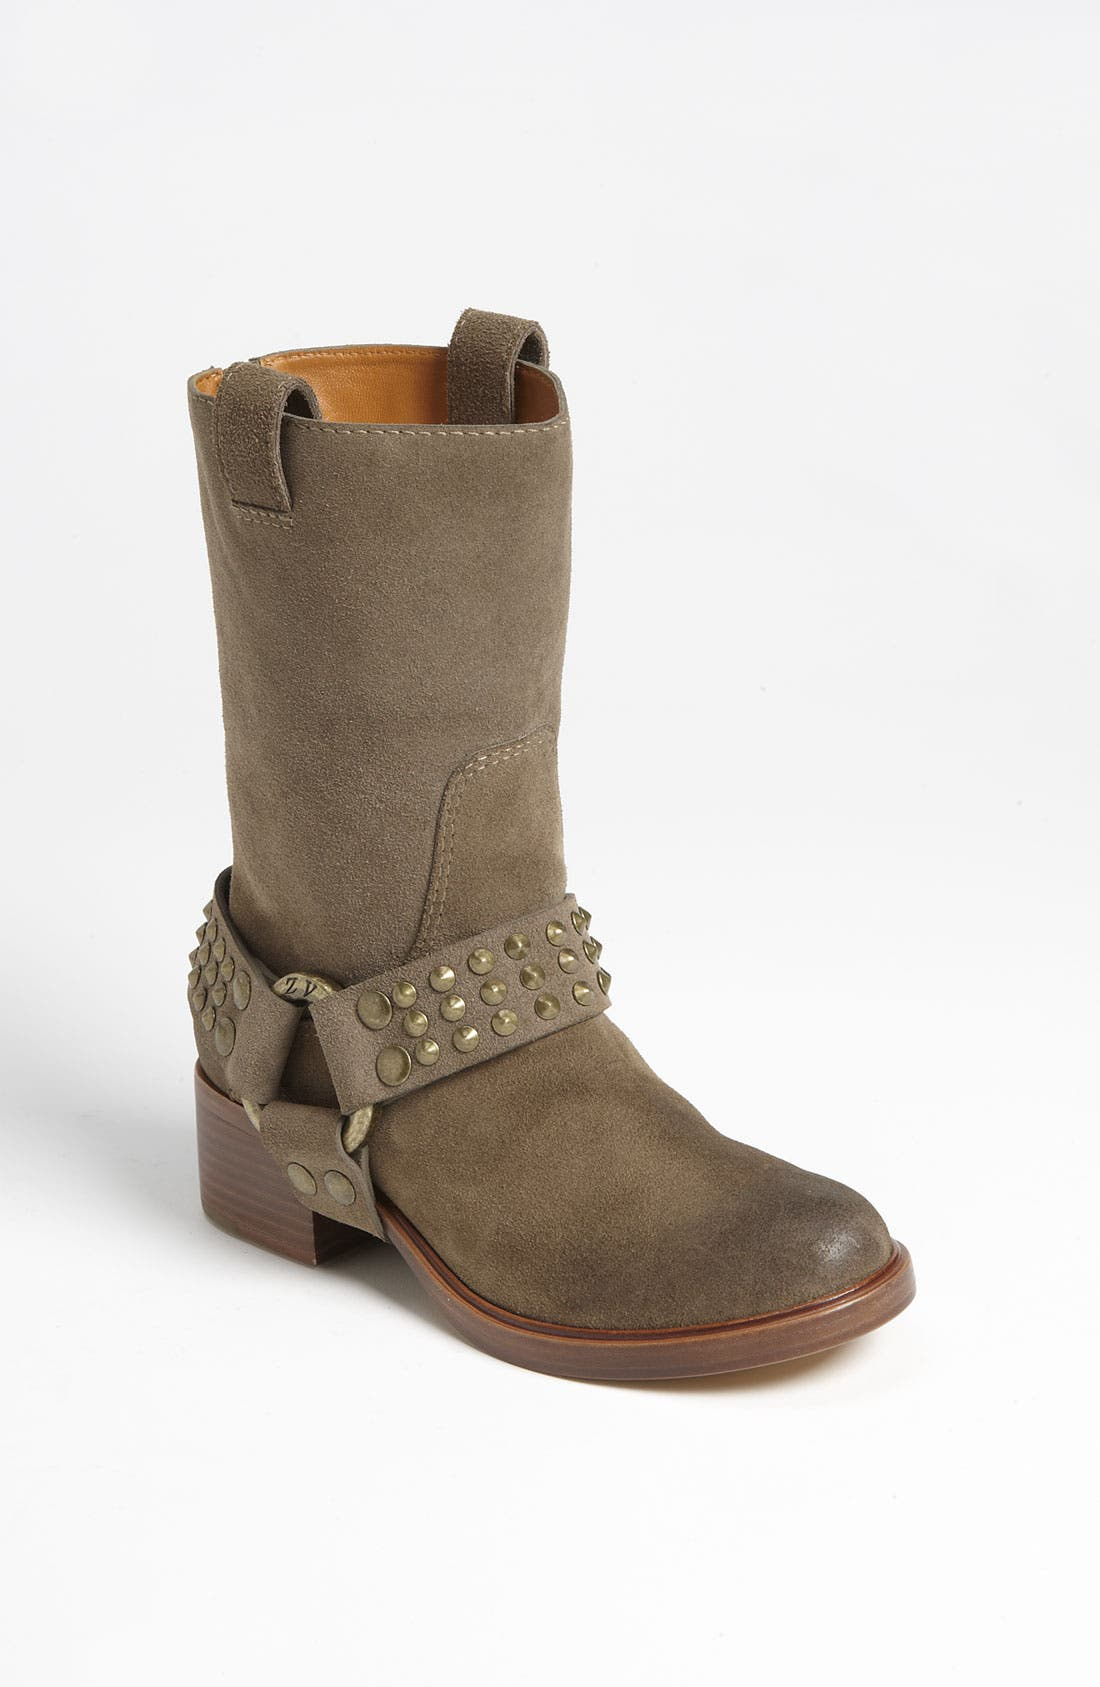 Main Image - Zadig & Voltaire 'Roady' Boot